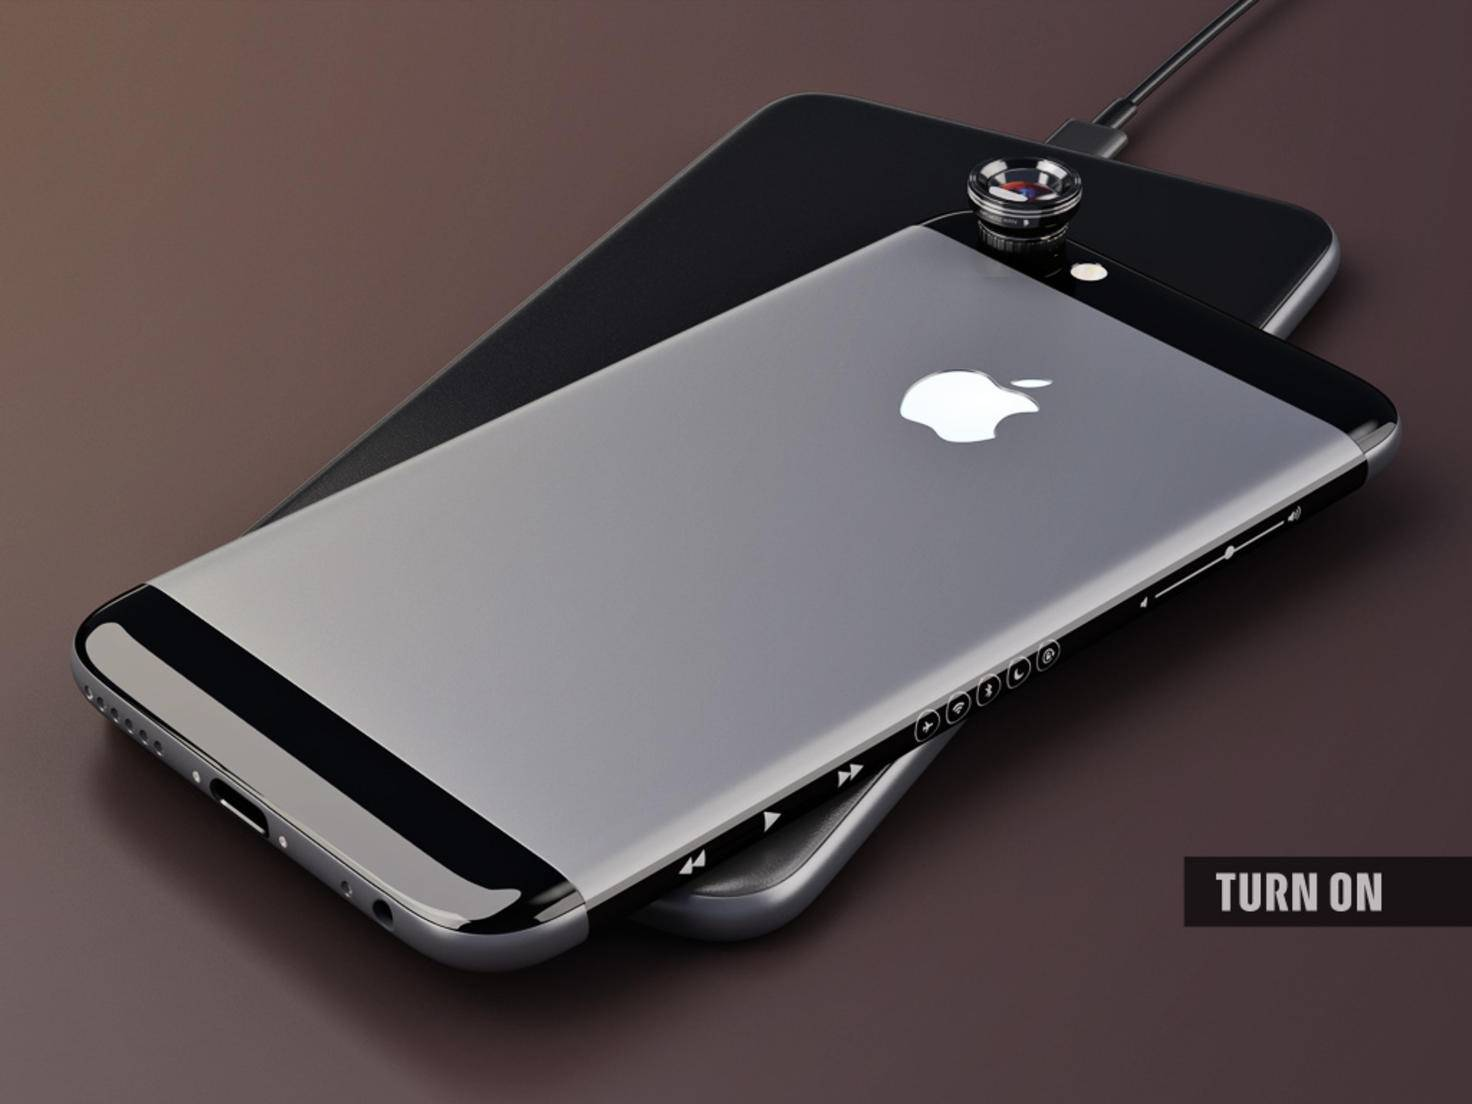 The back of our iPhone 7 is made of glass and metal, the charging station would be covered with artificial leather.